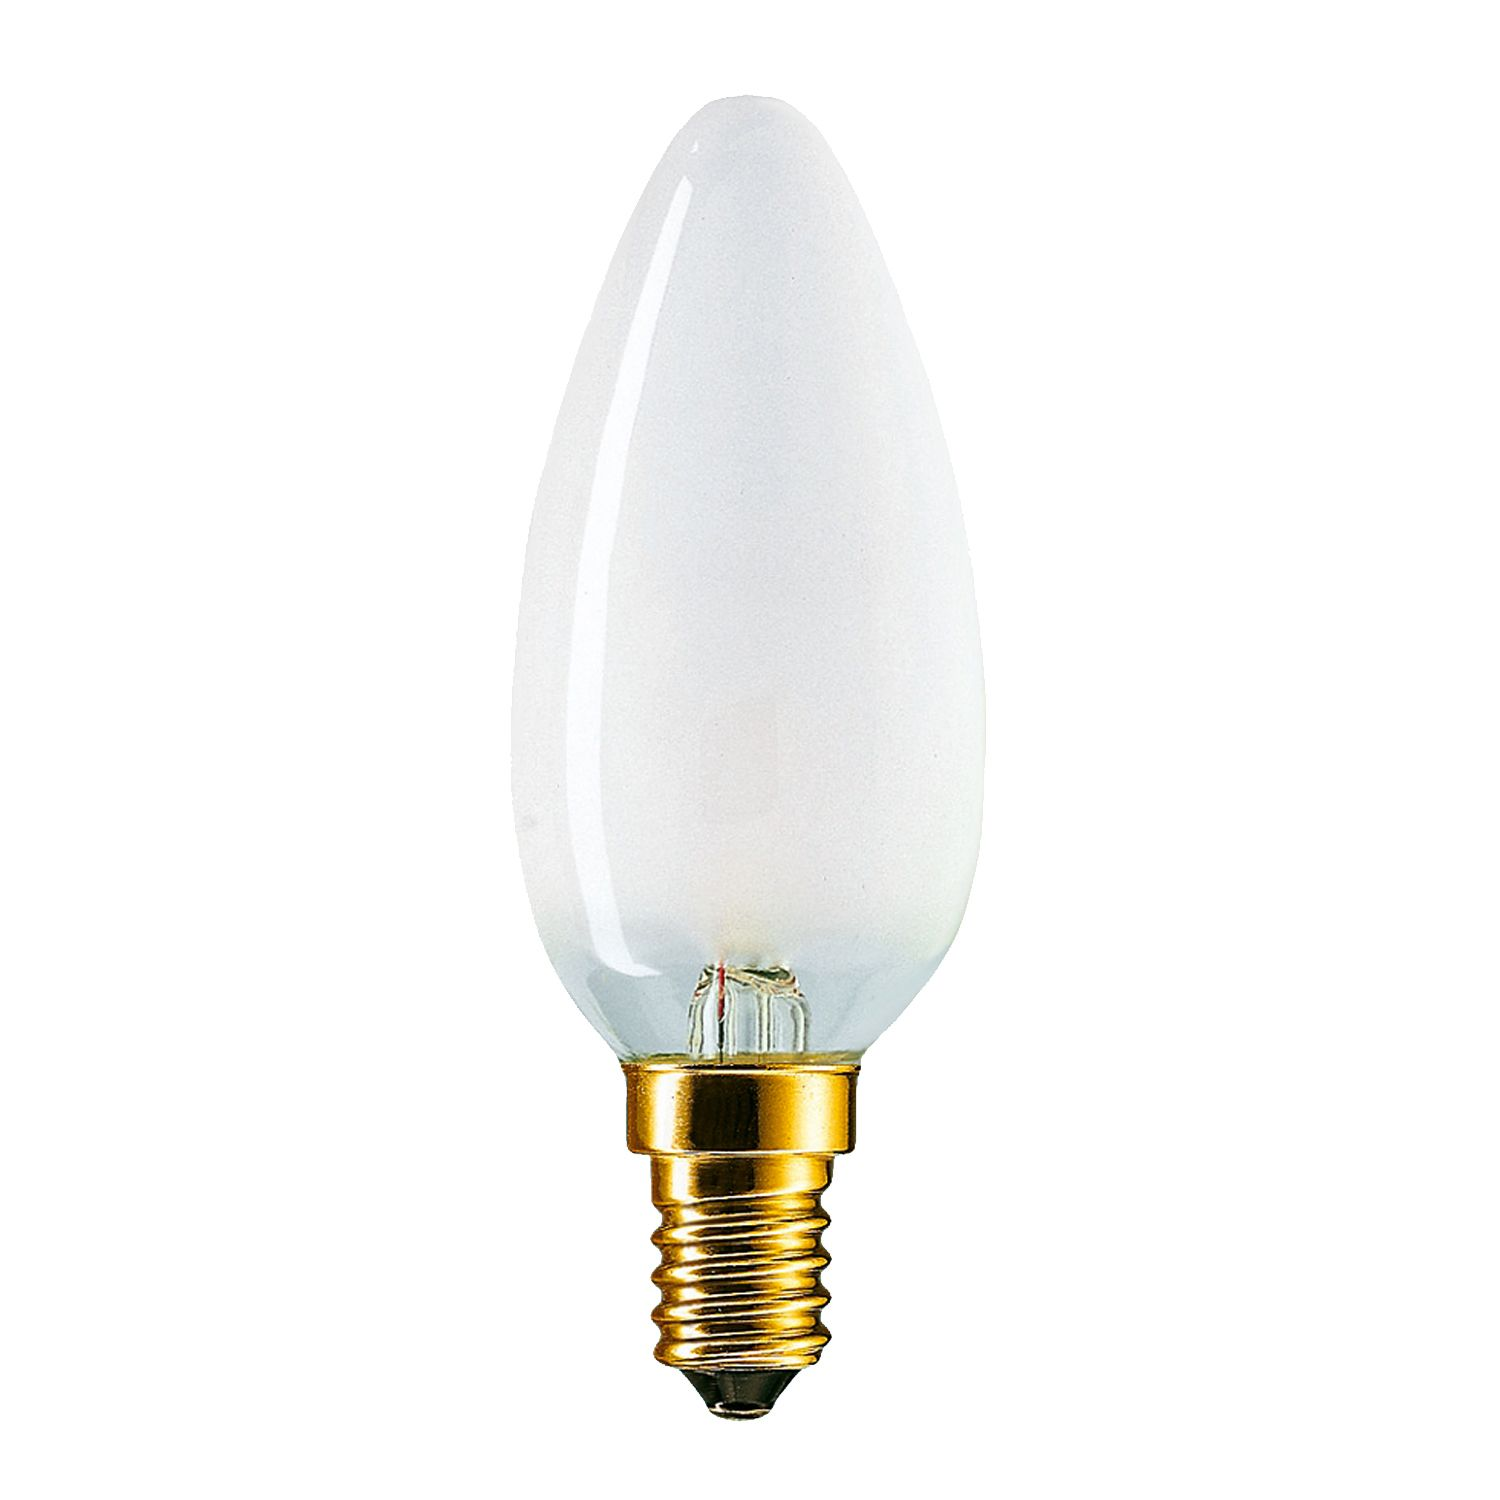 Standard Incandescent Candle Frosted B35 E14 25W 230V